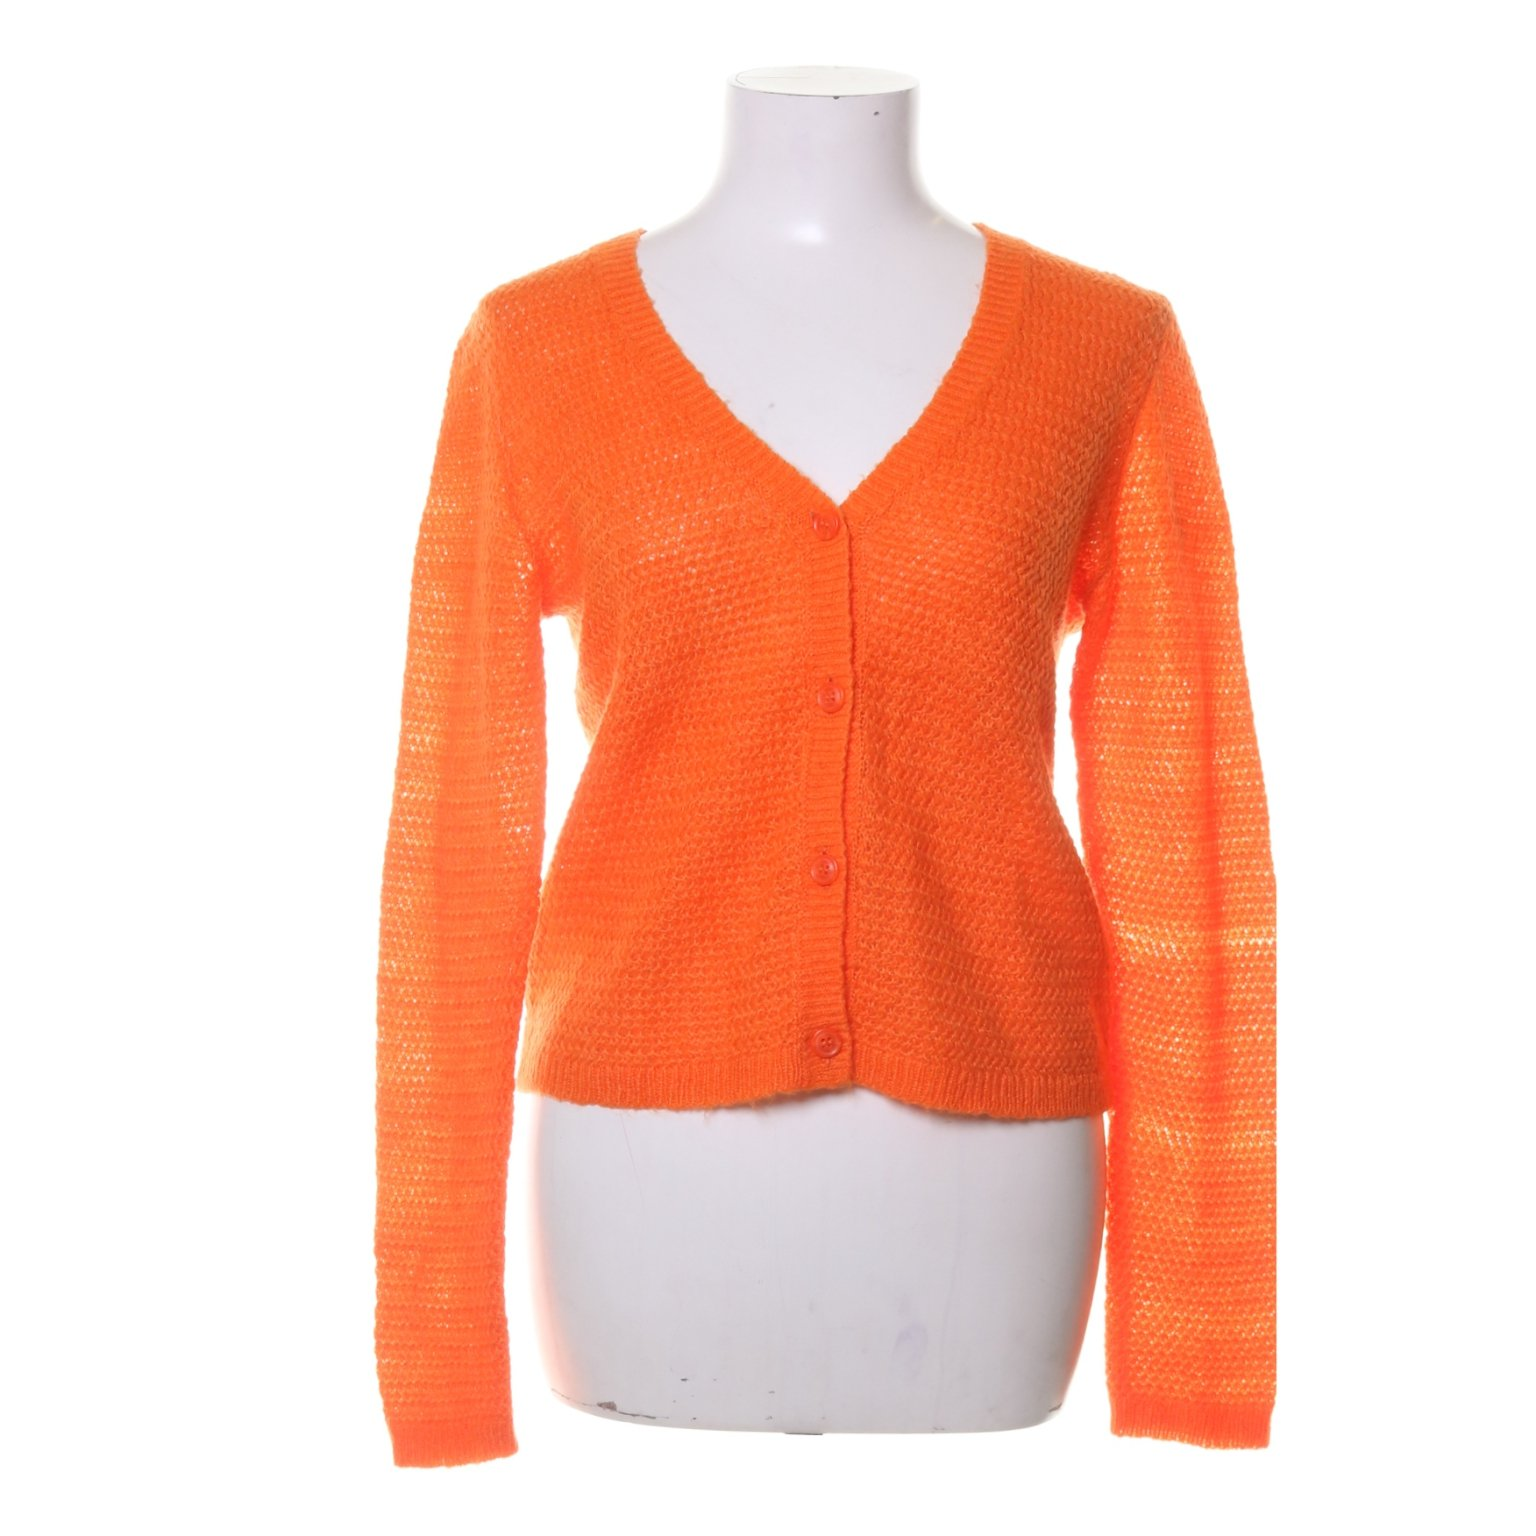 Monki, Kofta, Strl: S, Orange, Akryl/Mohair